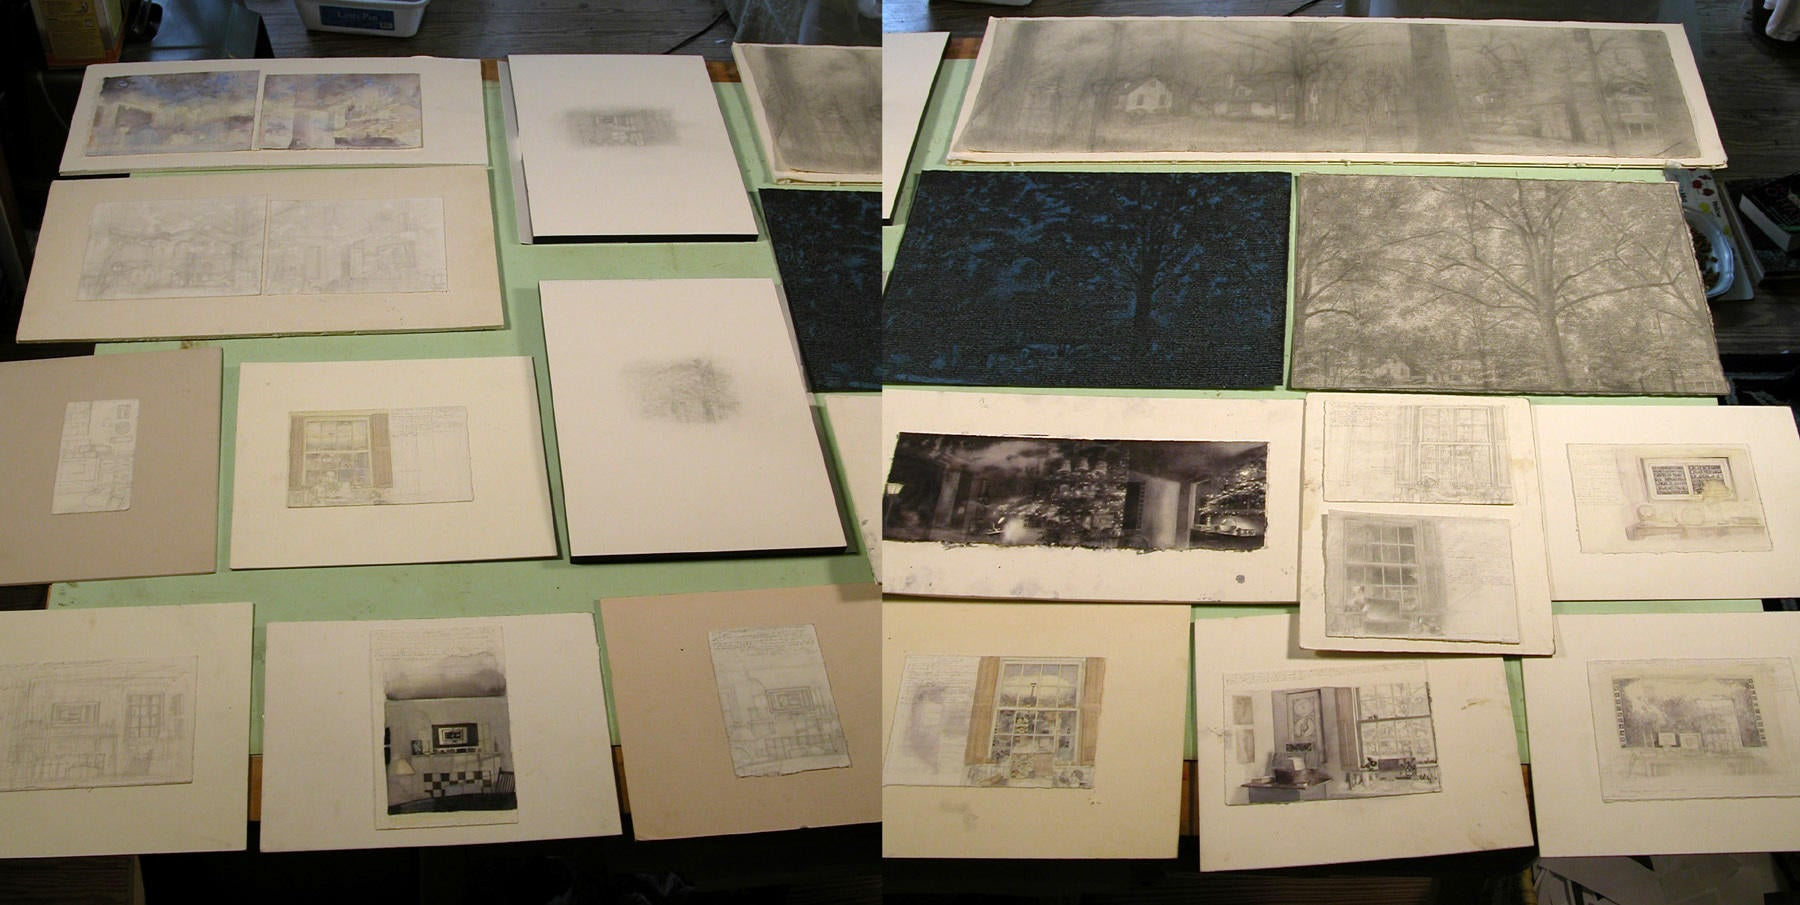 Photograph of Various Works in Progress image